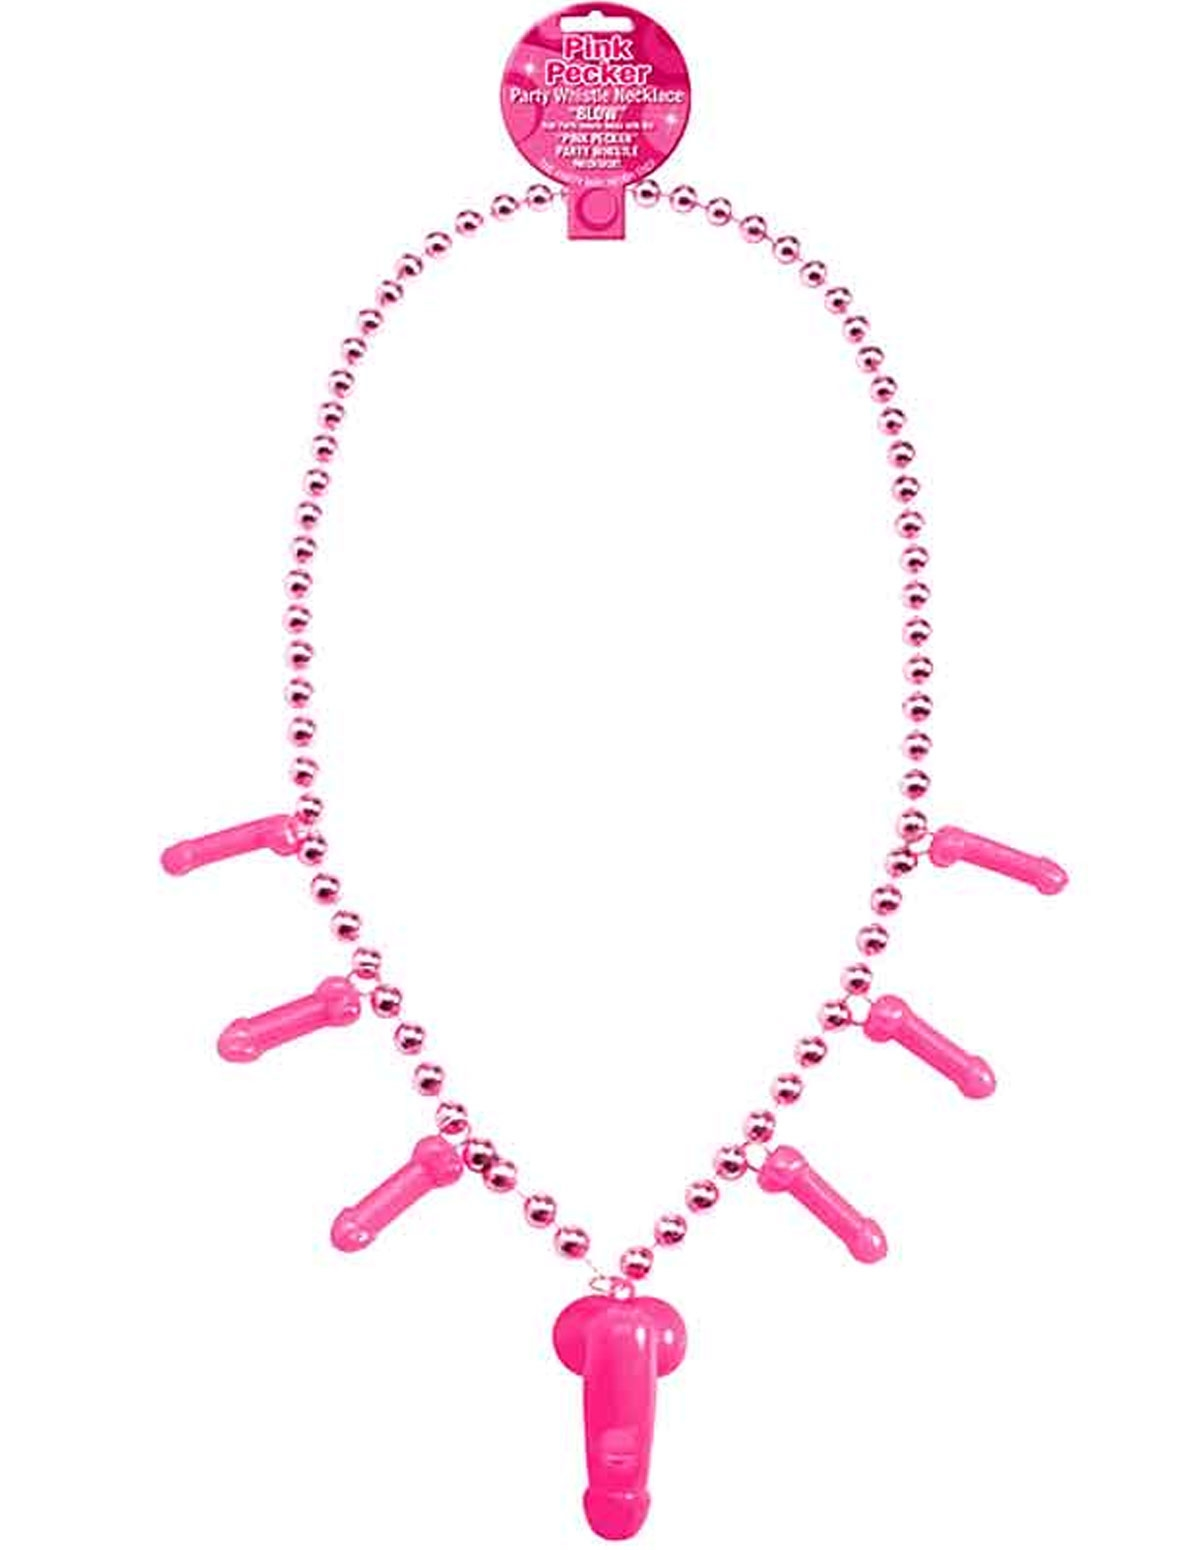 Pink Pecker Whistle Necklace